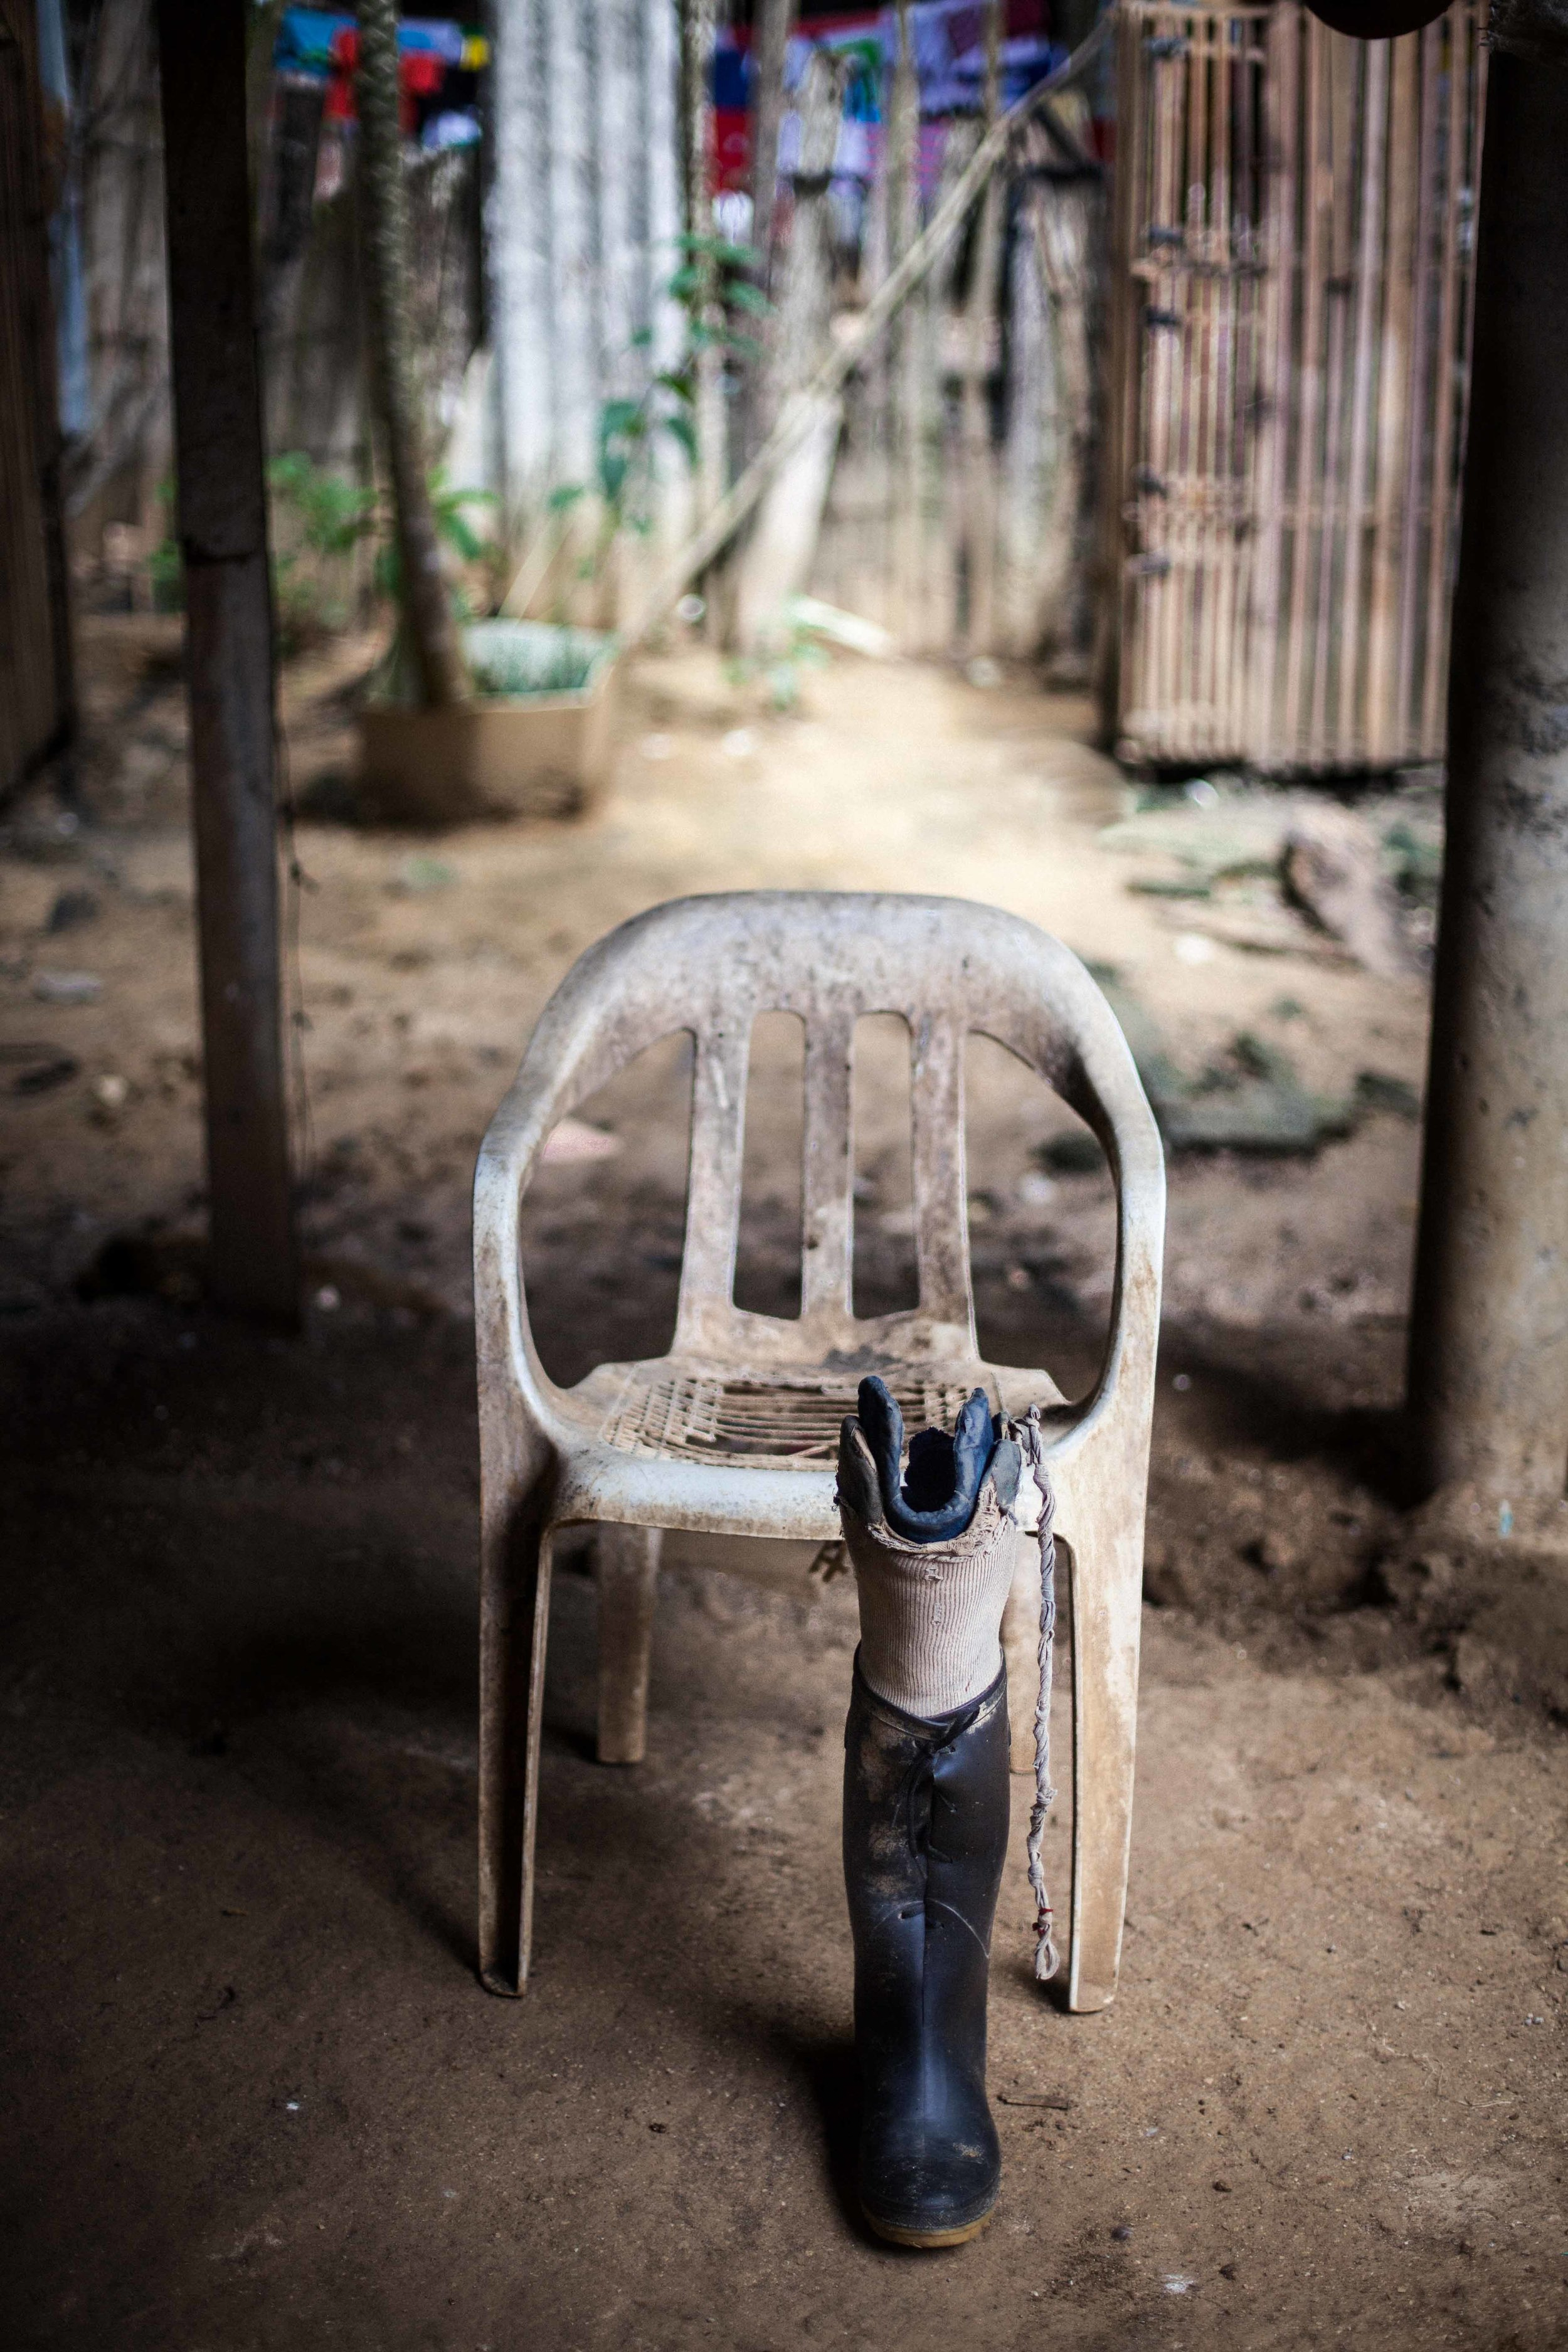 Since 1990, over 7,000 Military Forces soldiers have been killed or wounded by landmines suffering mutilation.